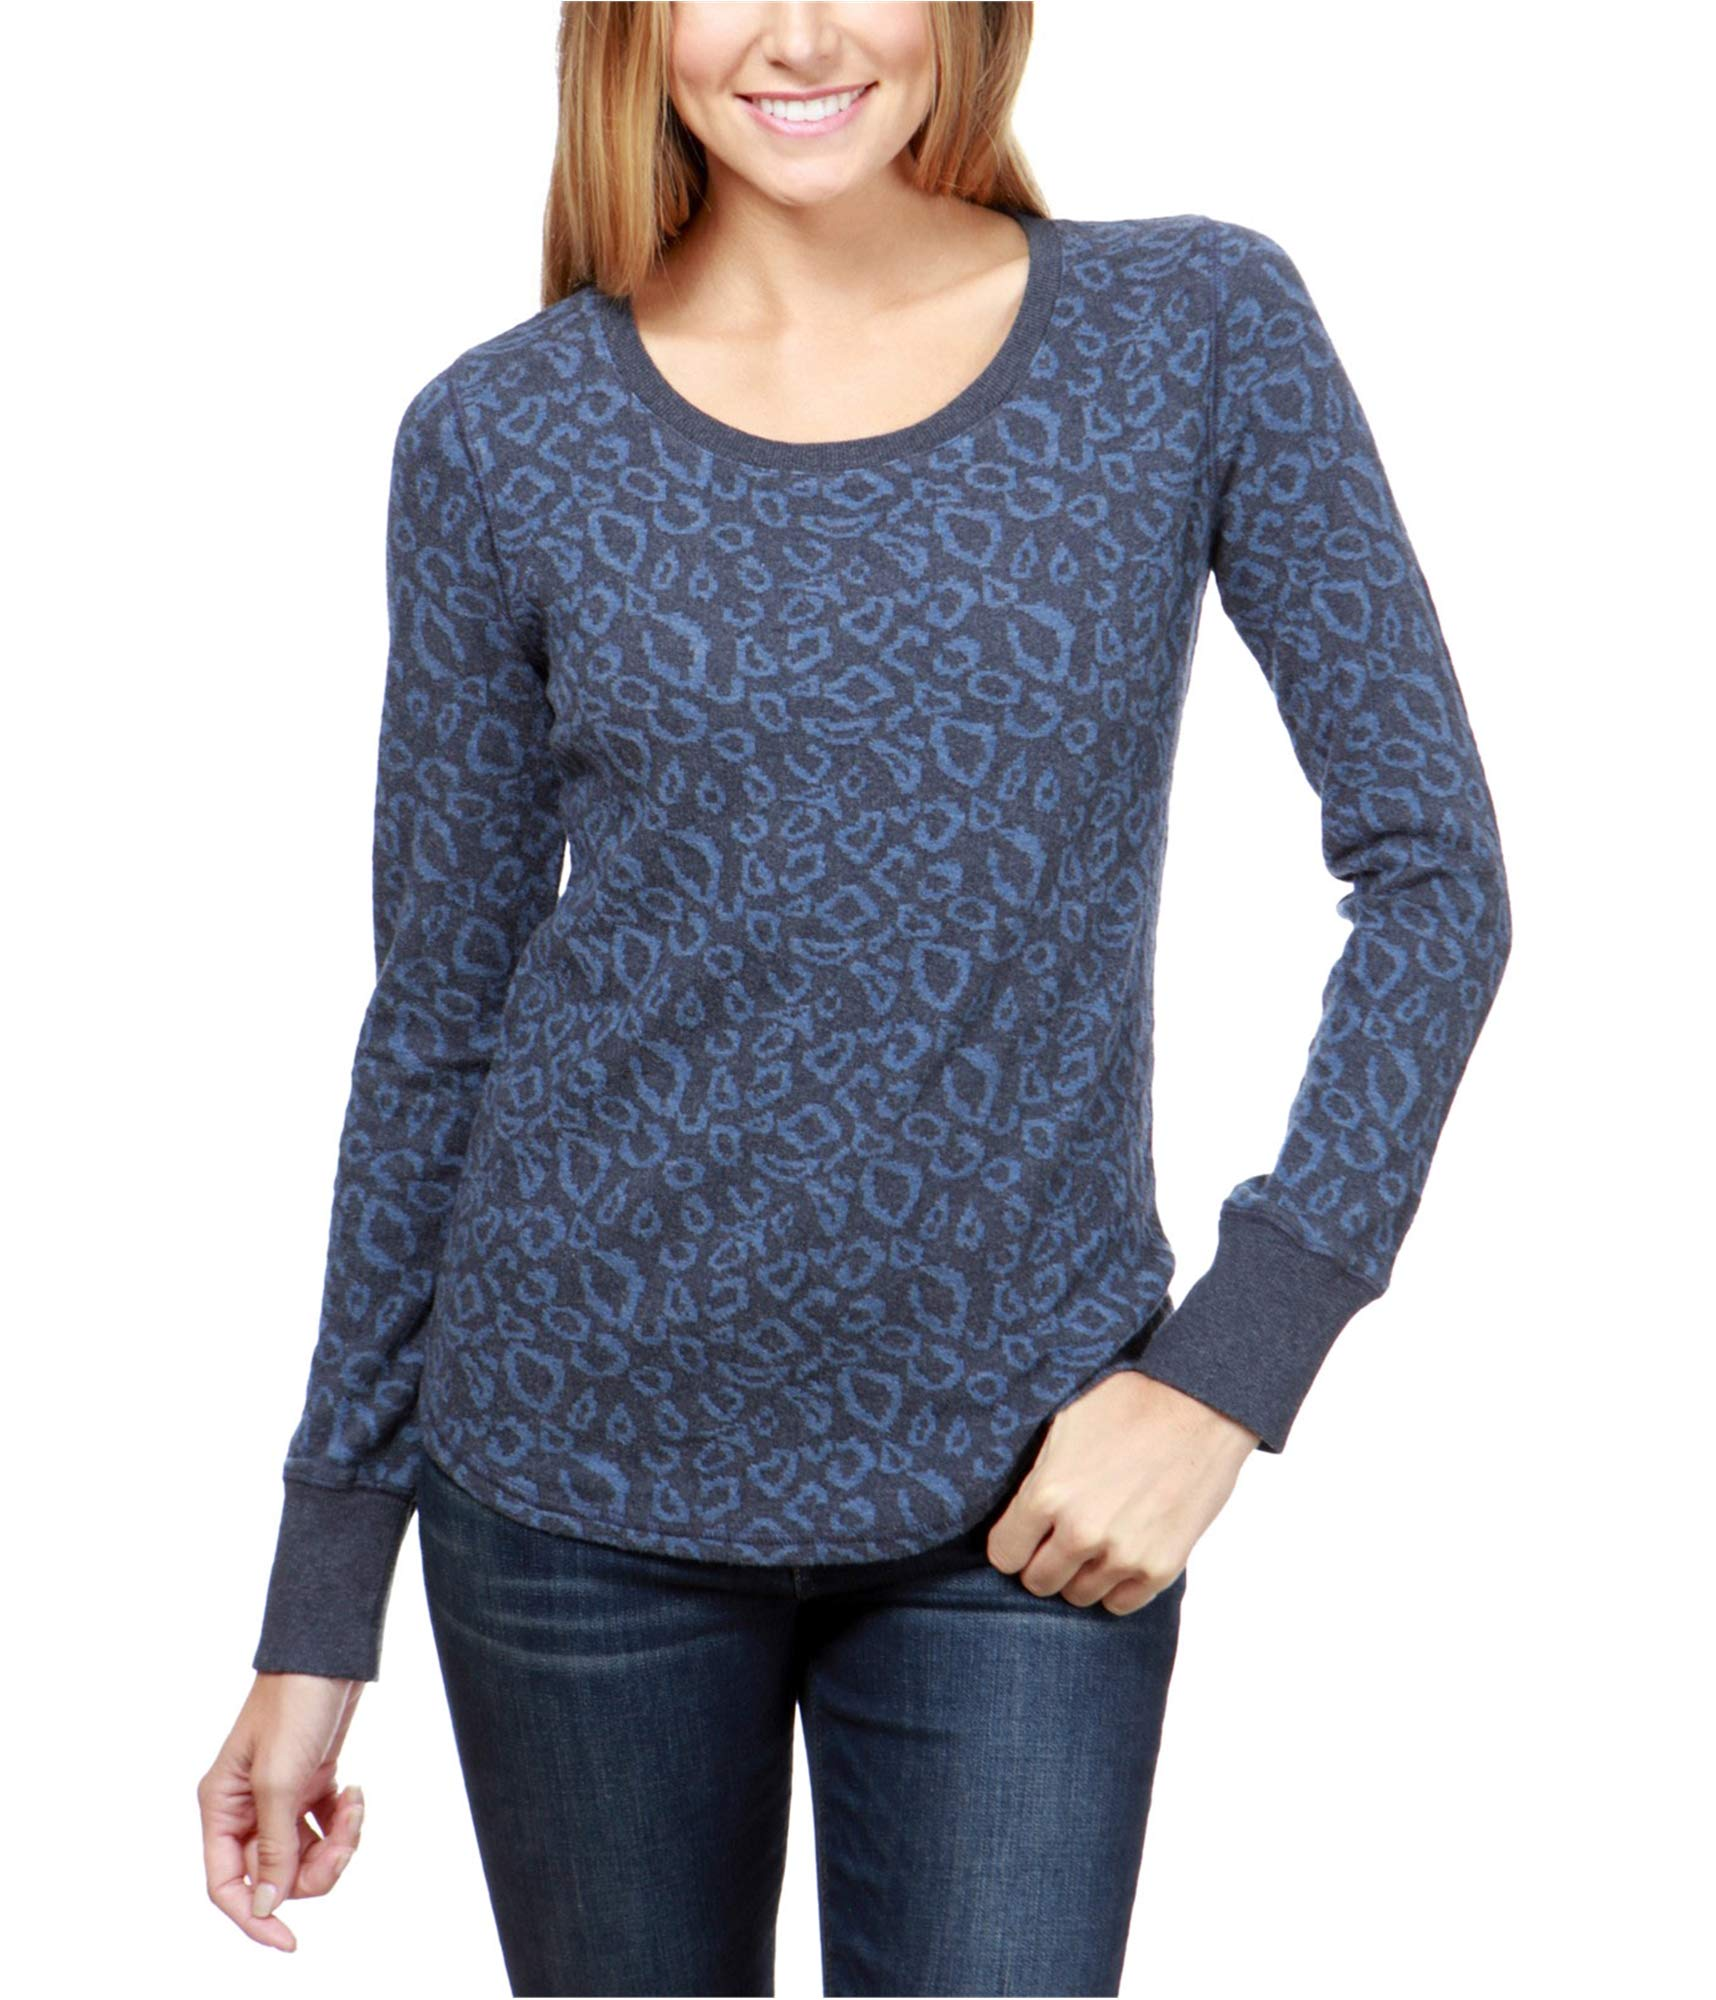 Lucky Brand Women's Cheetah Print Pullover, Blue/Multi, XL by Lucky Brand